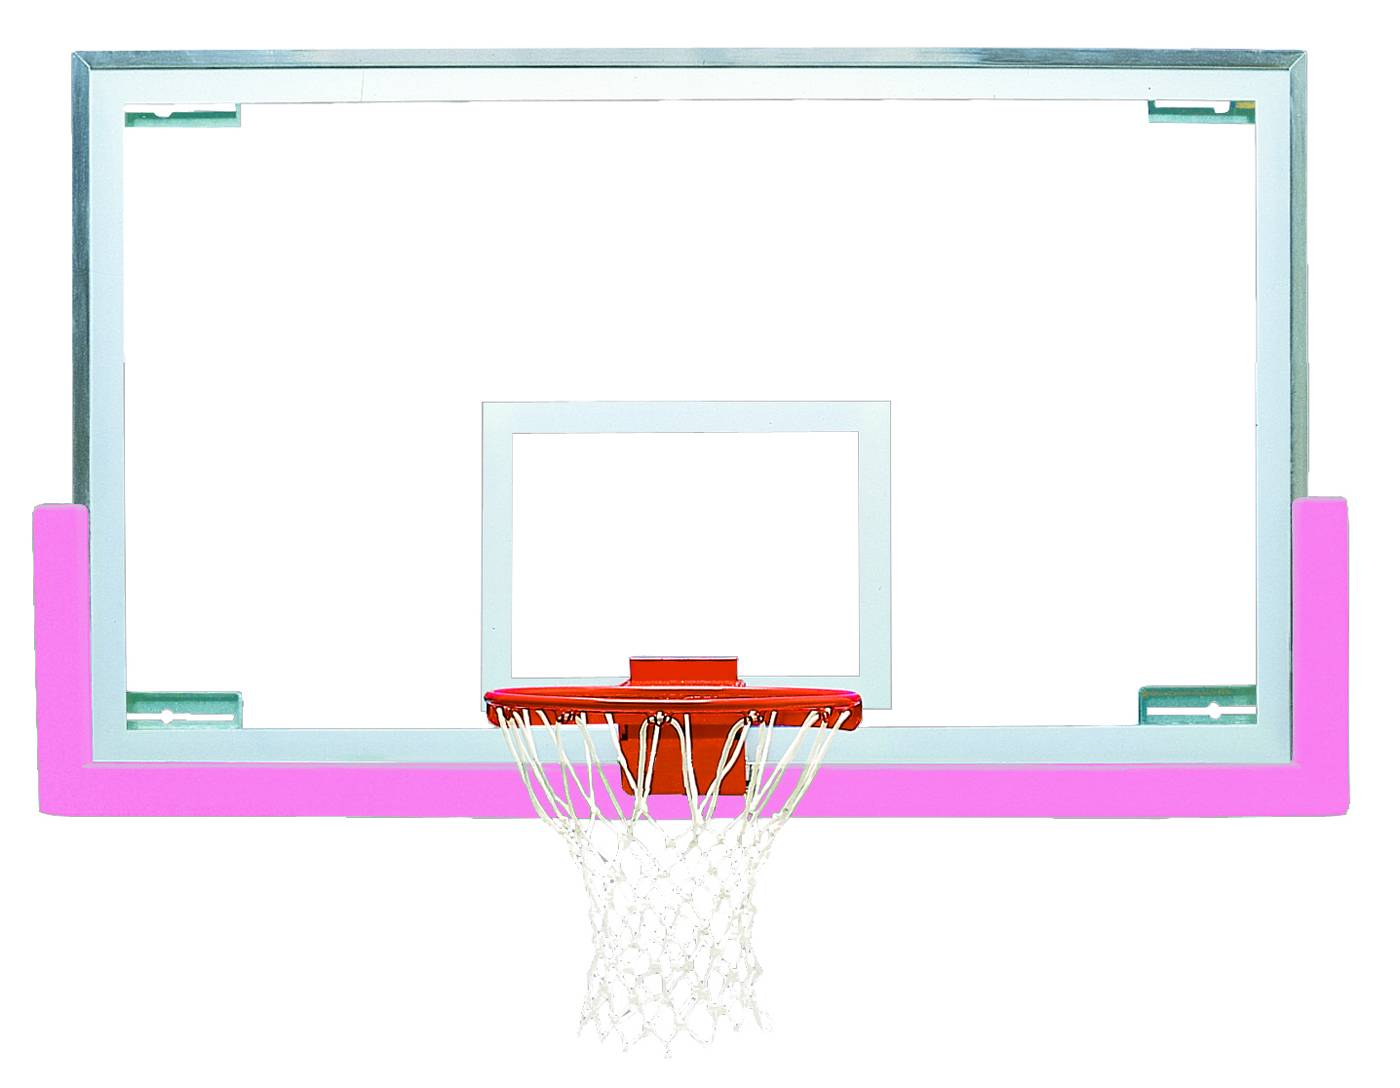 Basketball Hoop Dimensions Diagram Standard Board Size Bison Short Gymnasium Backboard Package